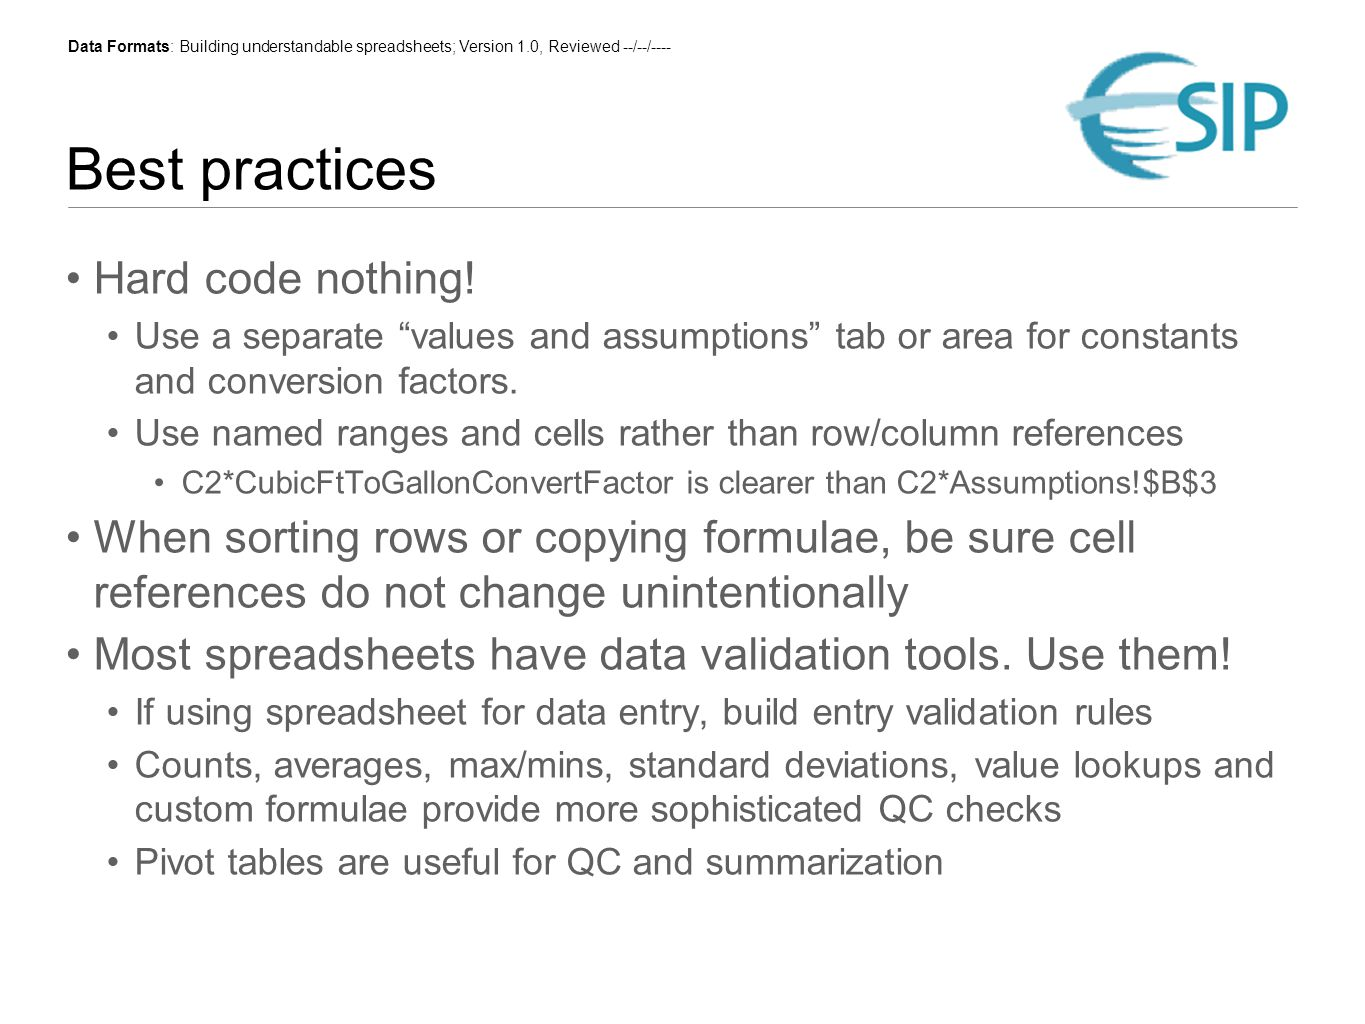 Data Formats: Building understandable spreadsheets; Version 1.0, Reviewed --/--/---- Version control and archiving Versioning and change management Periodic, dated backups are essential Simple version control is possible via a naming convention for saving incremental copies, along with a log of significant changes Version control systems, like Subversion, are powerful but complex How will you archive for long-term availability.